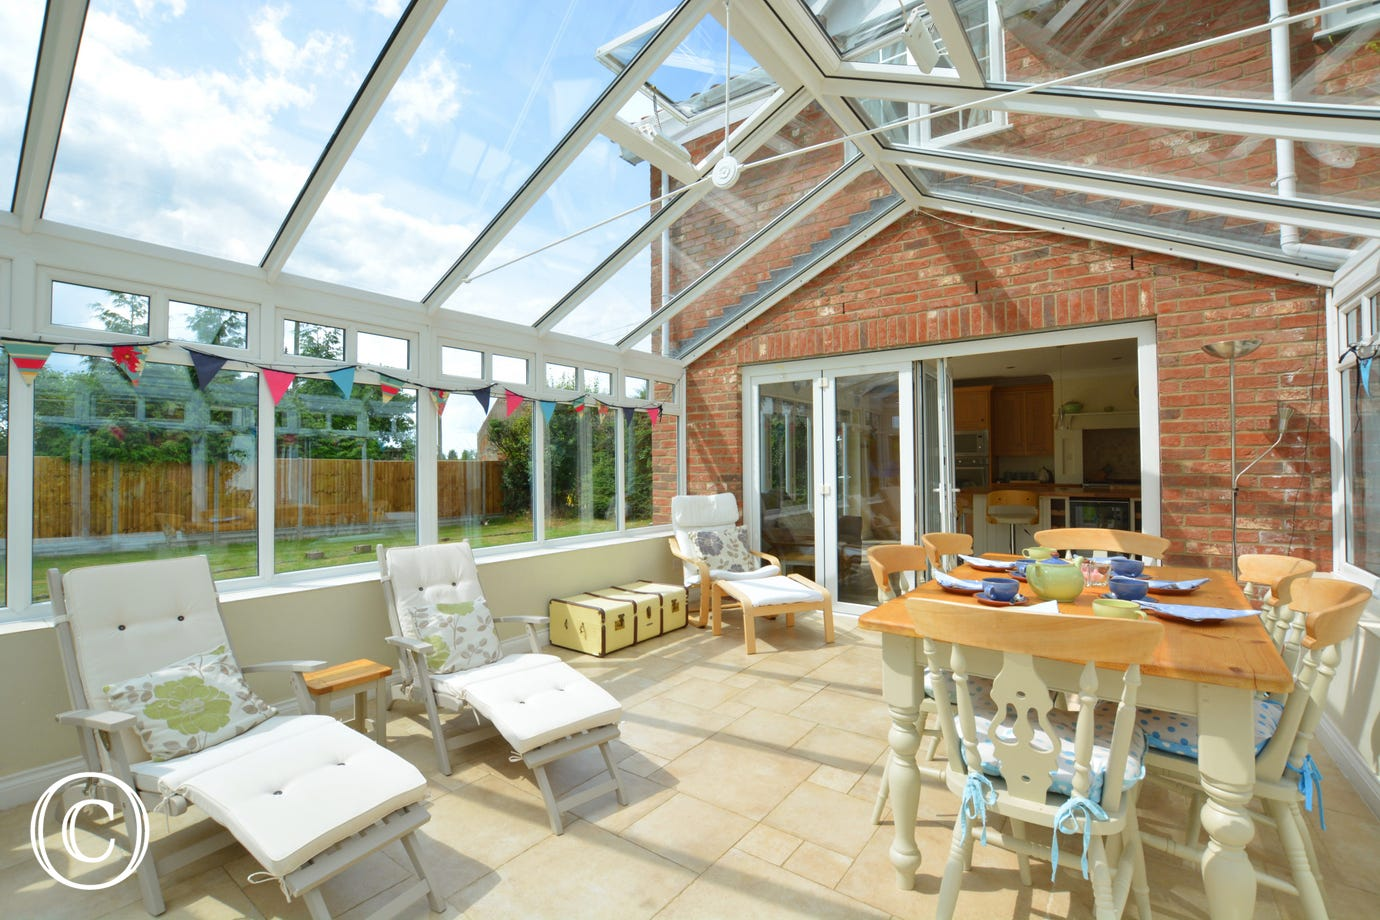 Conservatory with reclining loungers, table and chairs perfect for relaxing!